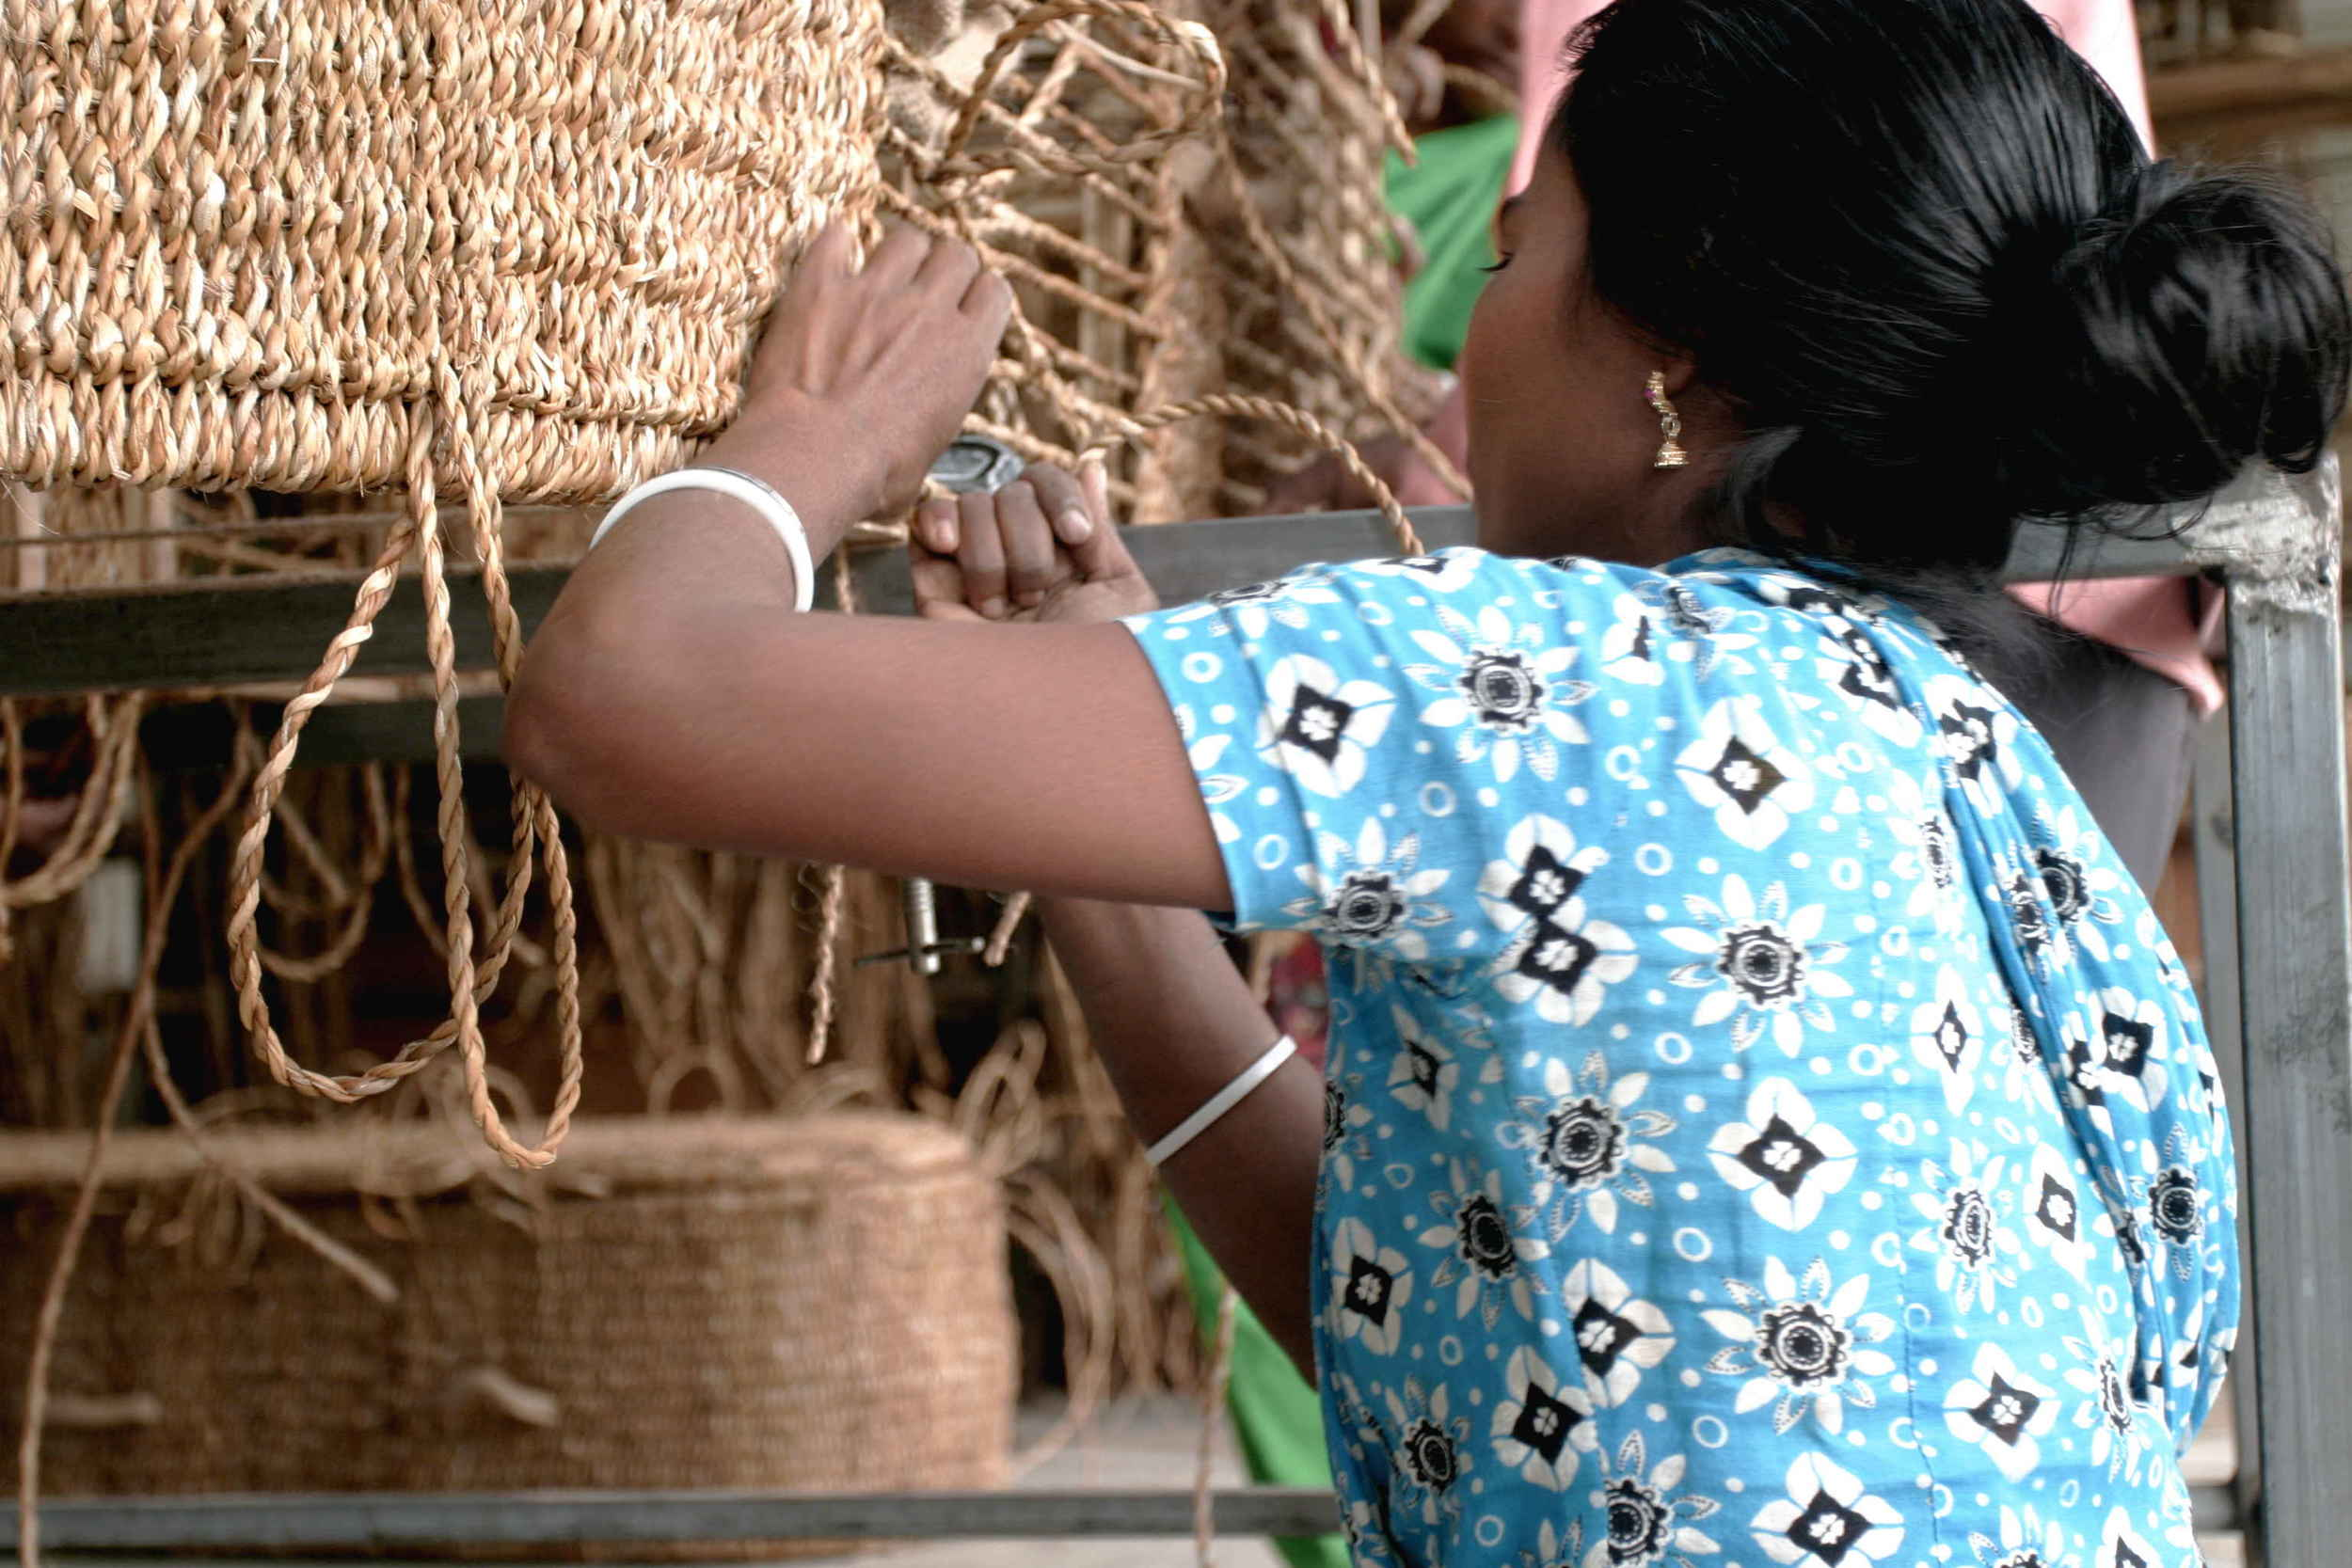 Weaving a seagrass coffin is intricate and skilled work